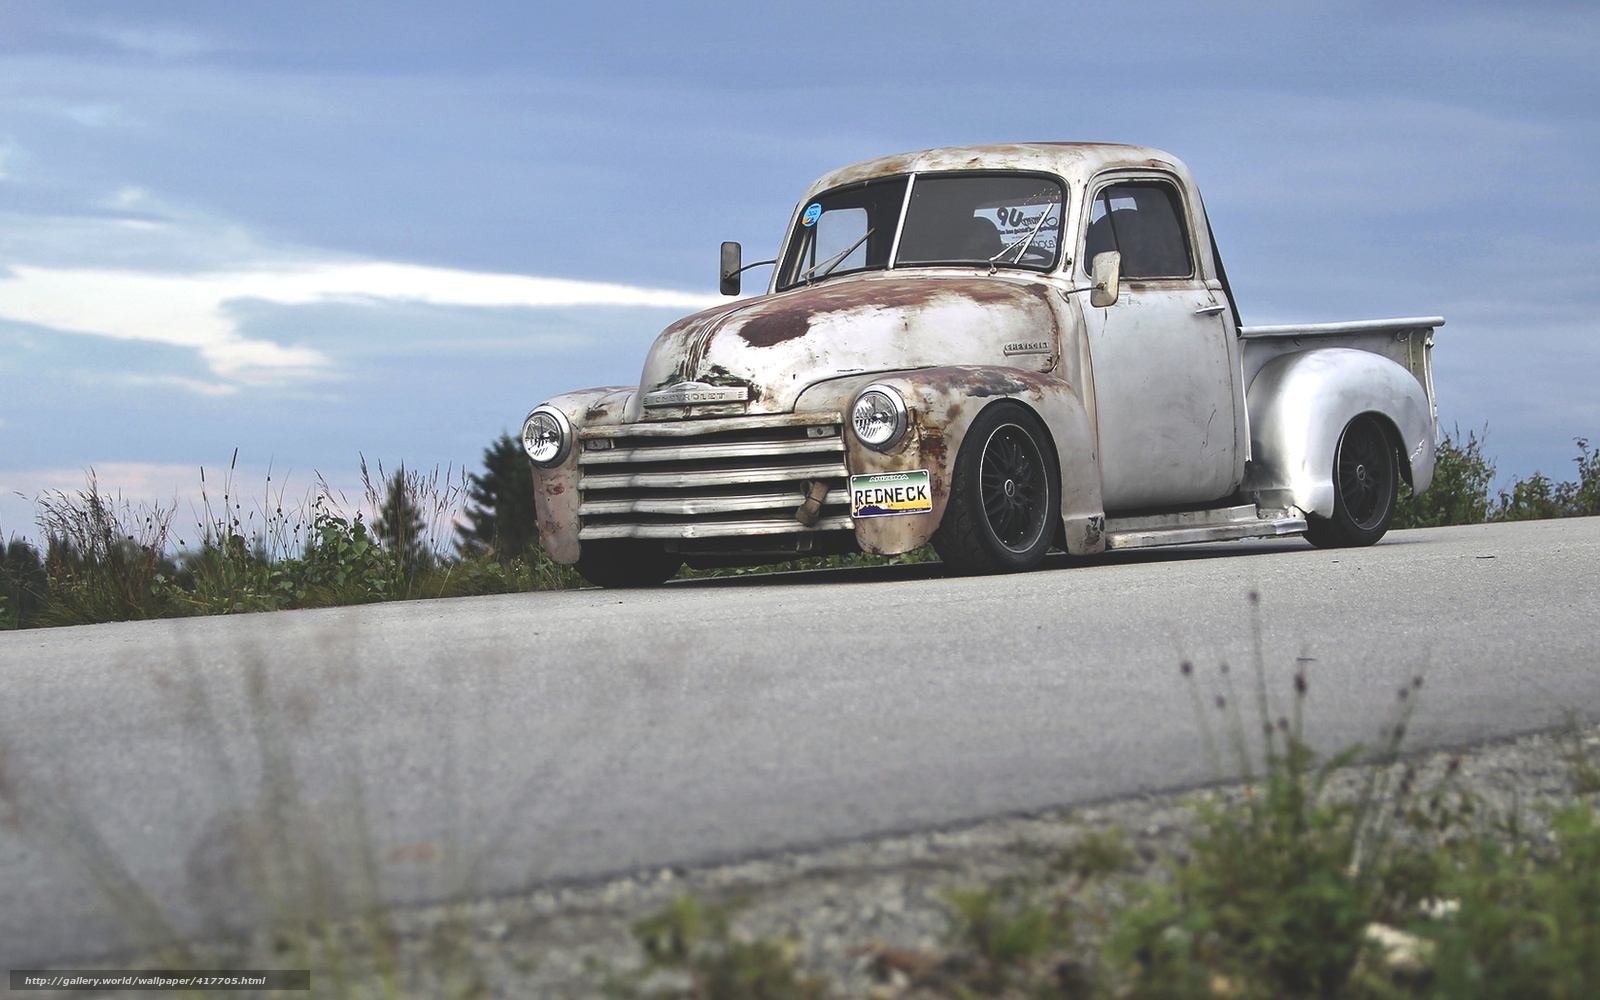 Download wallpaper chevrolet pickup hot rod truck free desktop wallpaper in the resolution 1680x1050 picture 417705